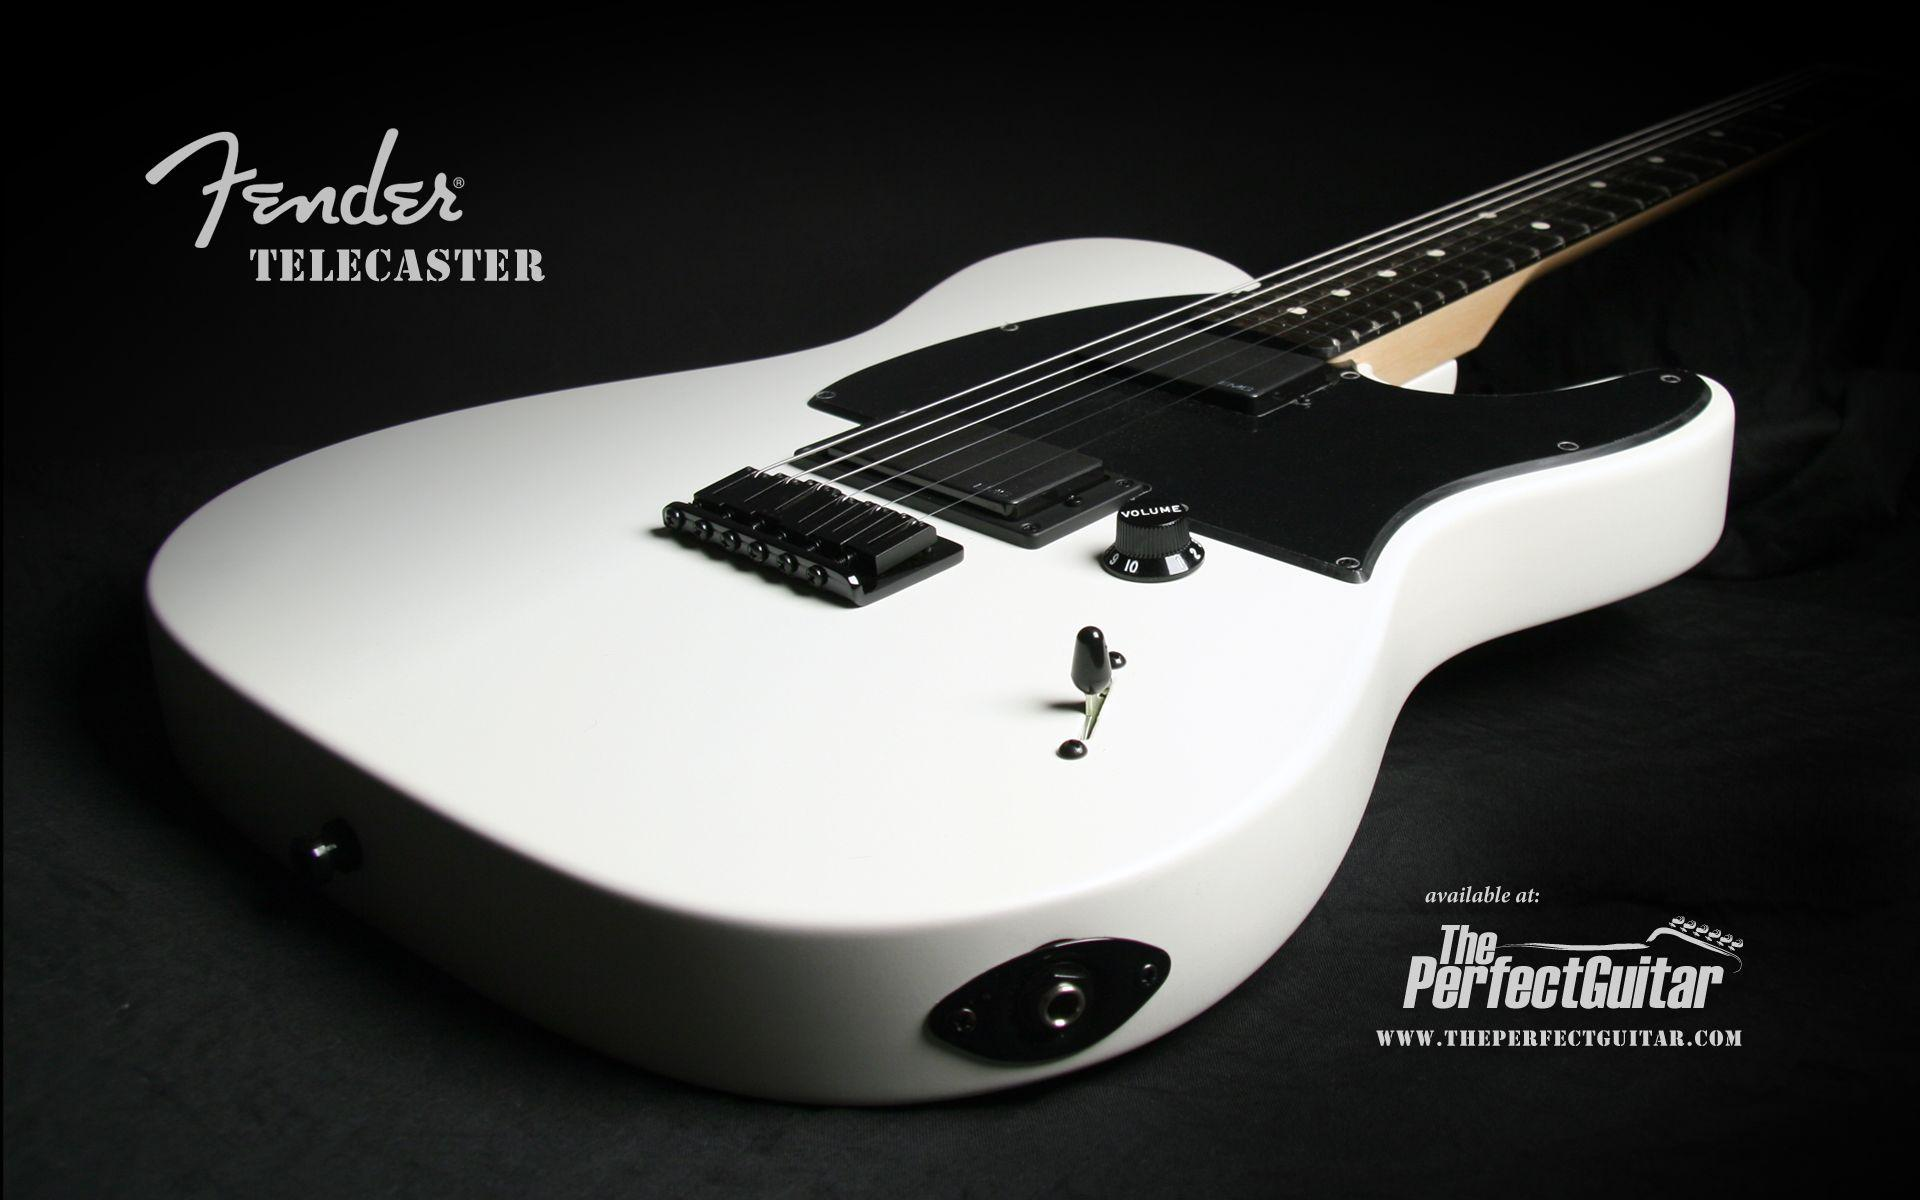 Telecaster Wallpapers - Full HD wallpaper search